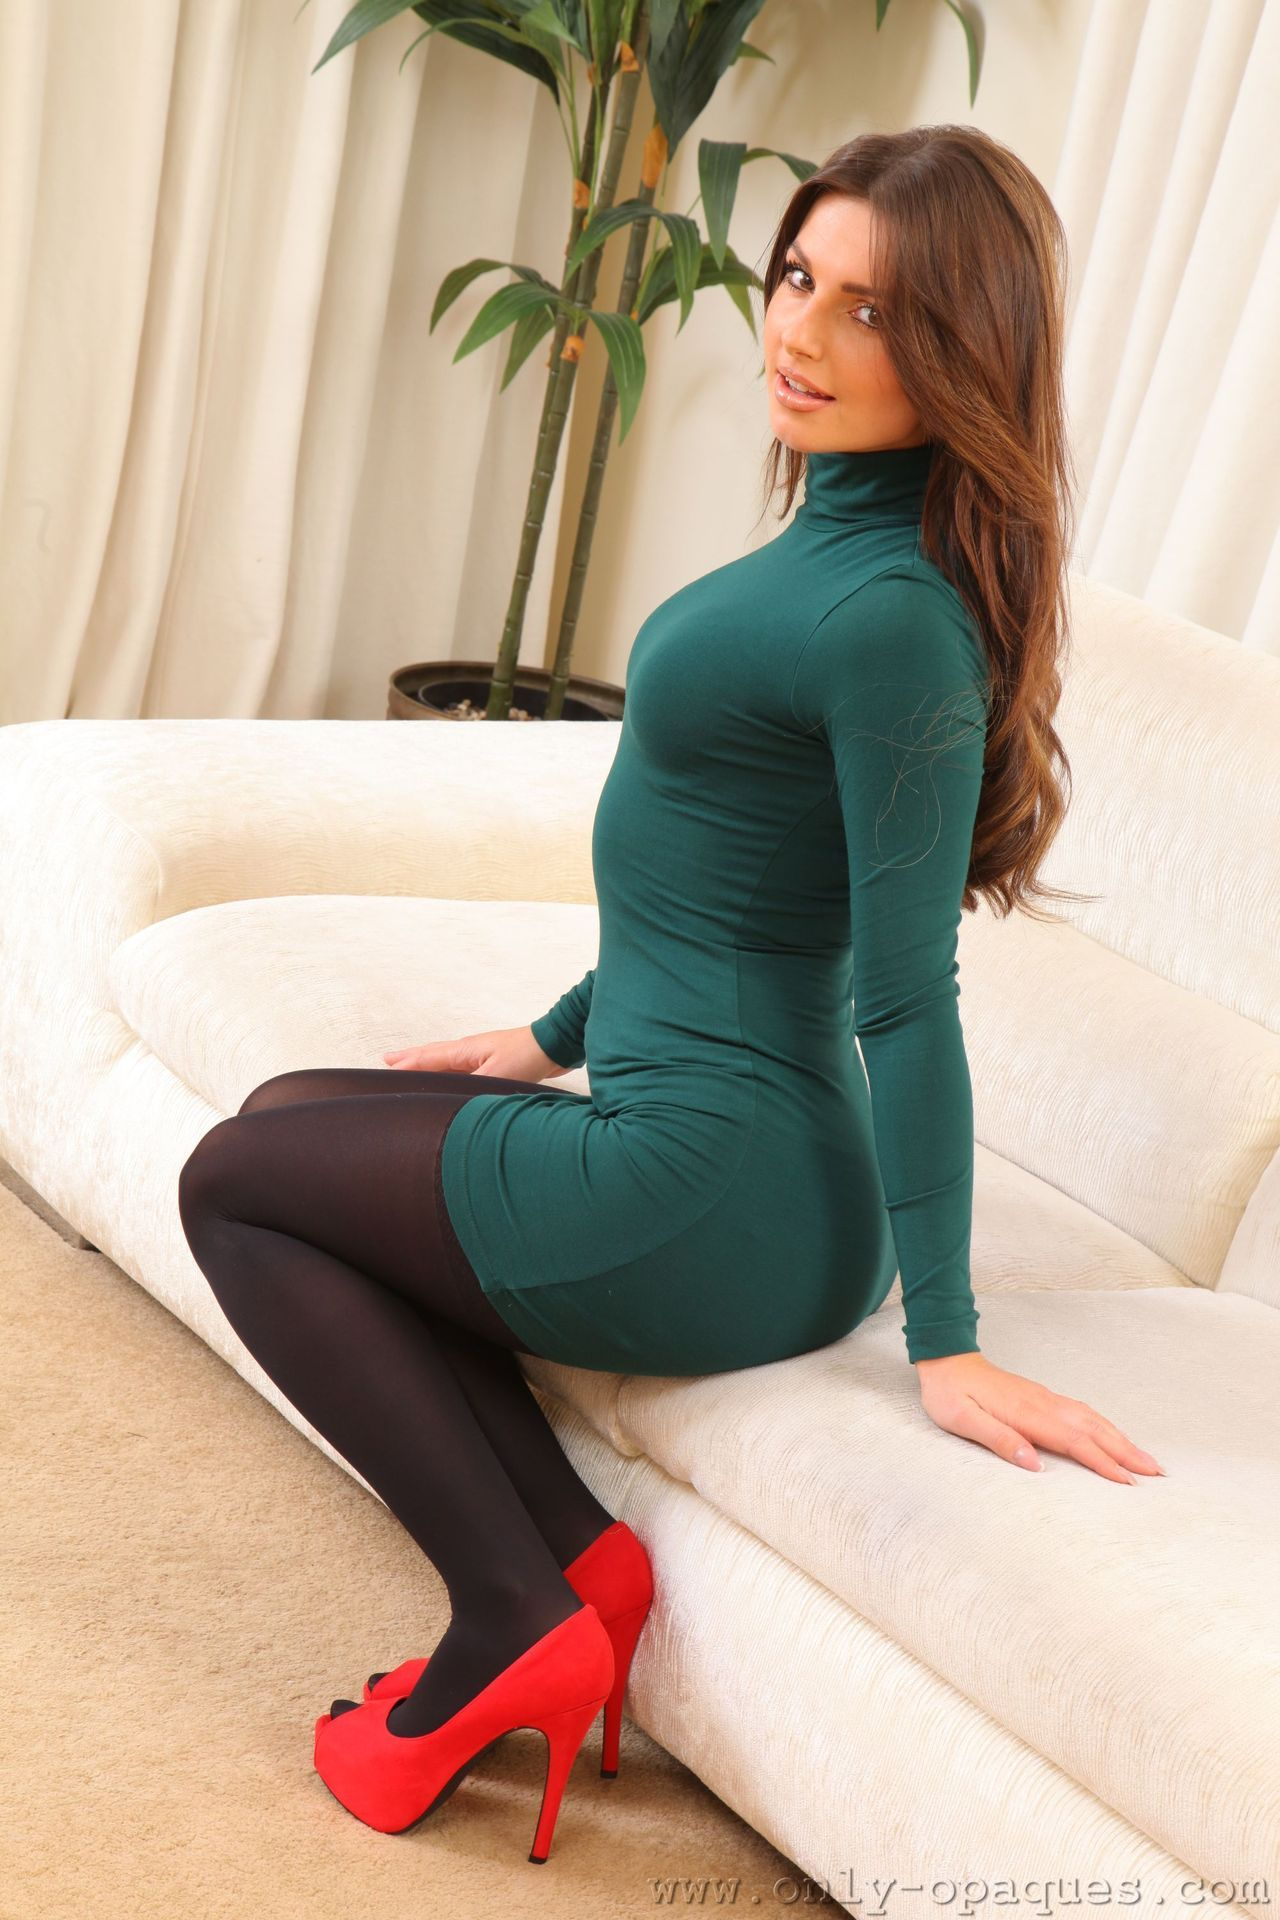 Girl with green sweater office sex